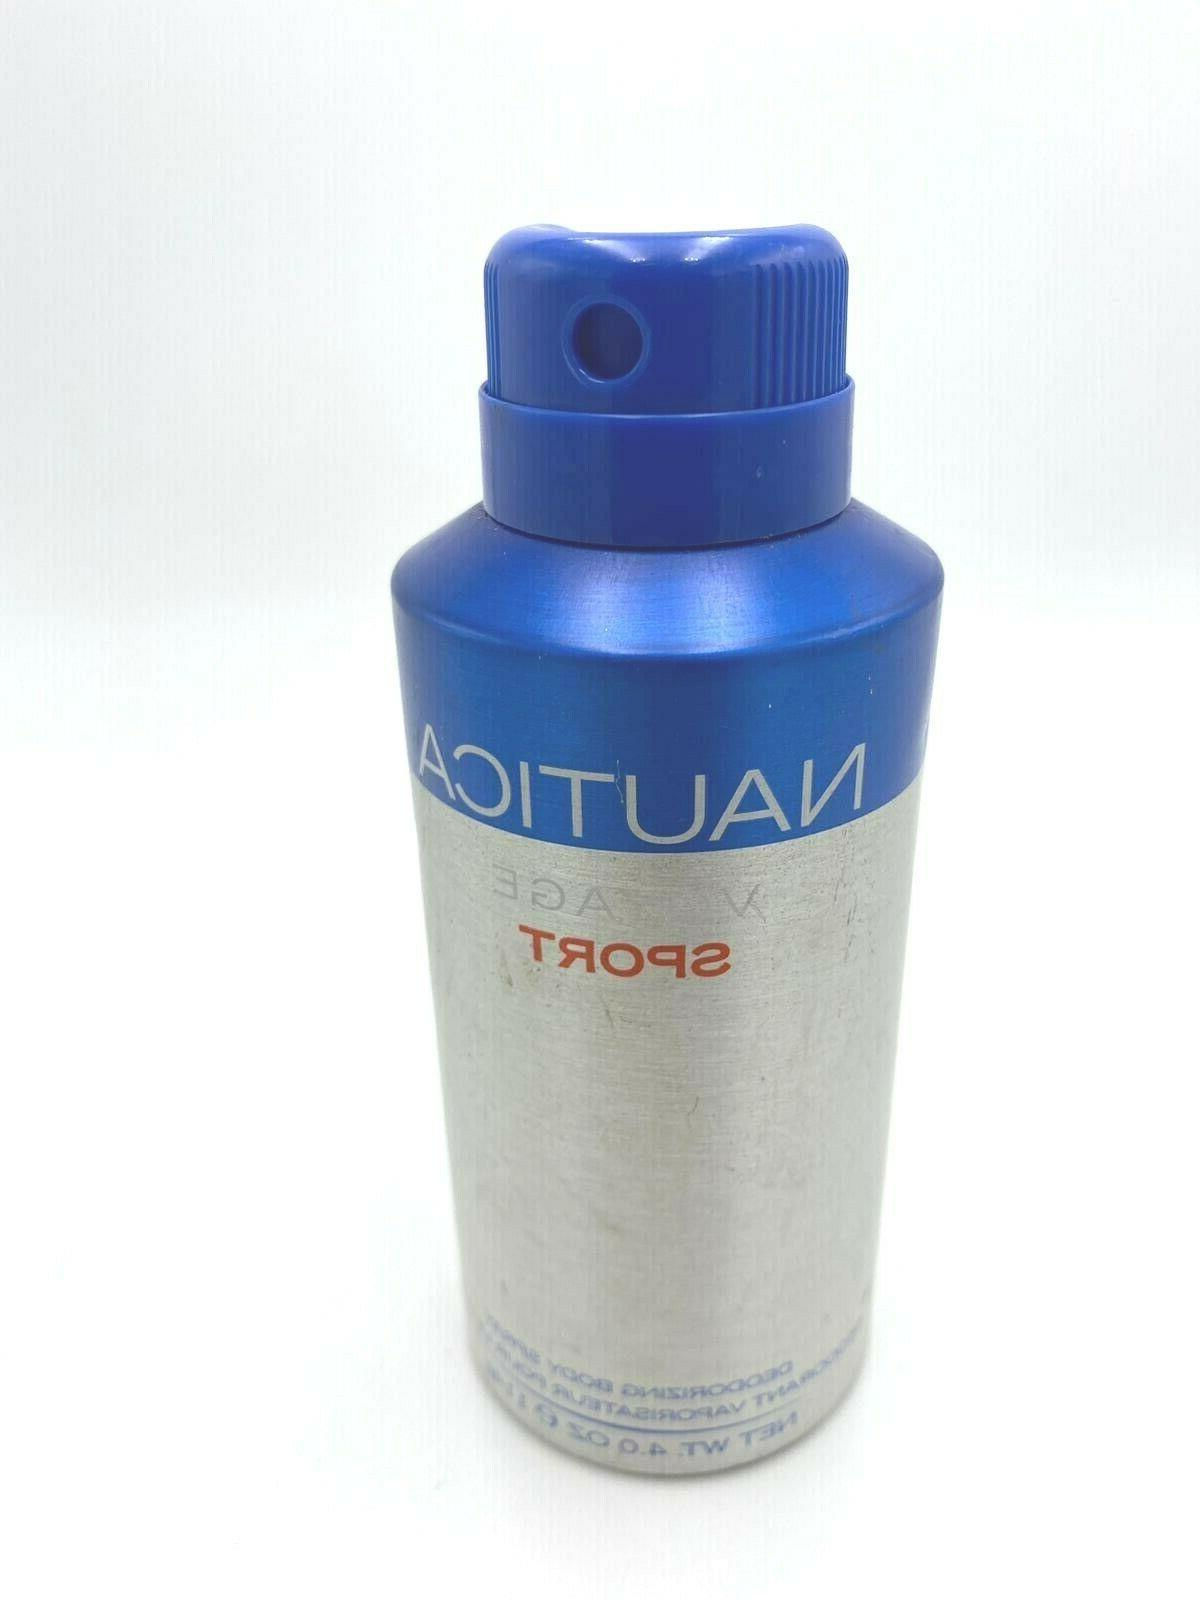 Nautica Voyage Sport Body Spray 4.0 oz 114 g